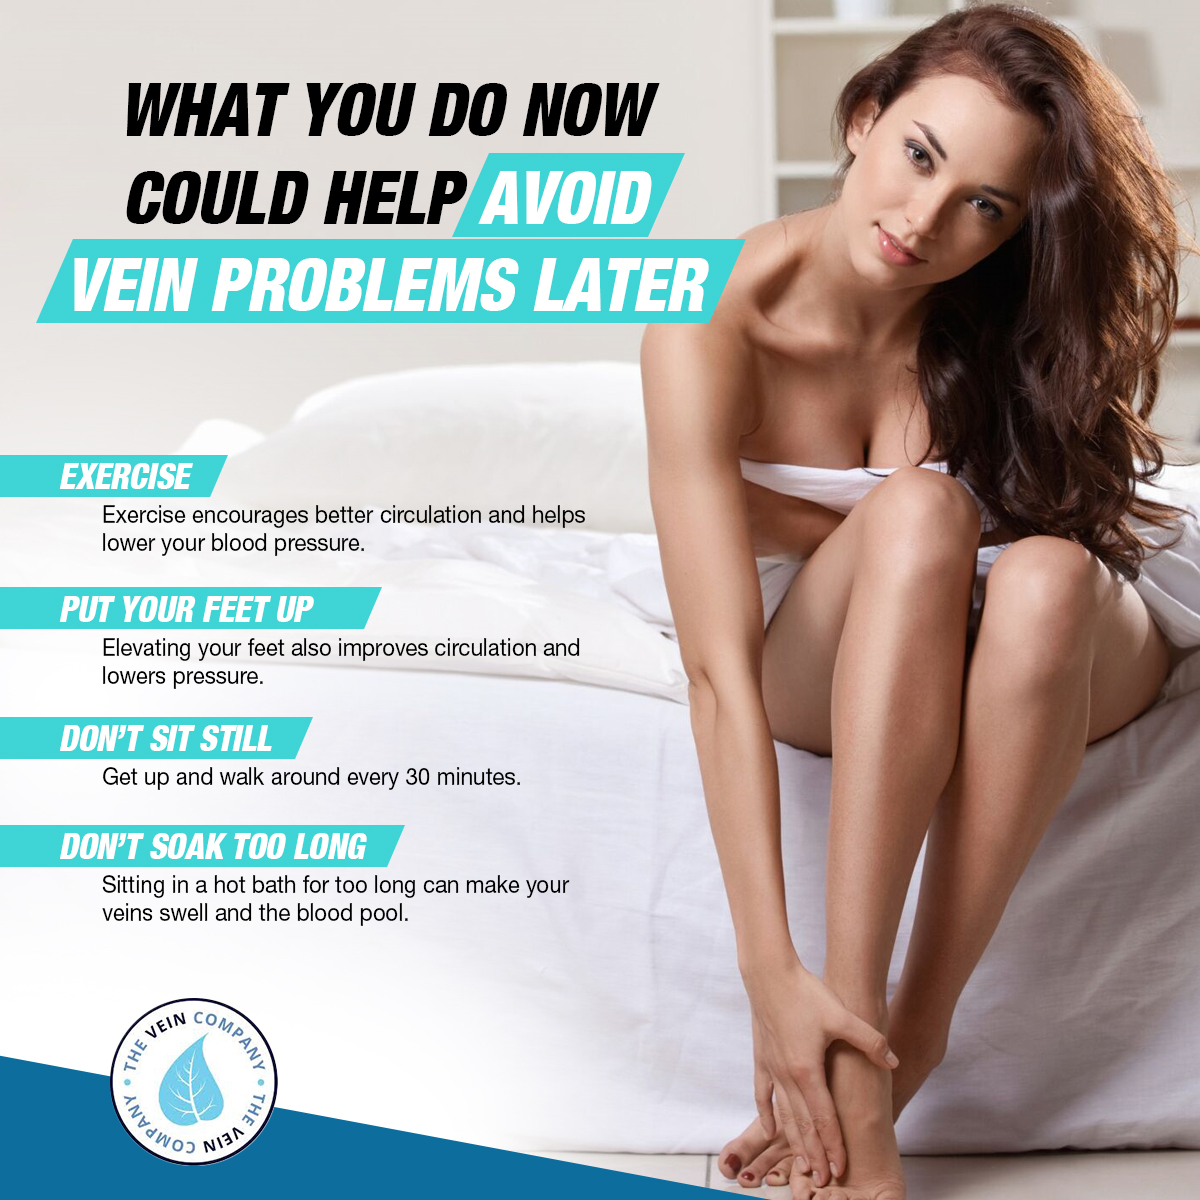 What You Do Now Could Help Avoid Vein Problems Later [Infographic]